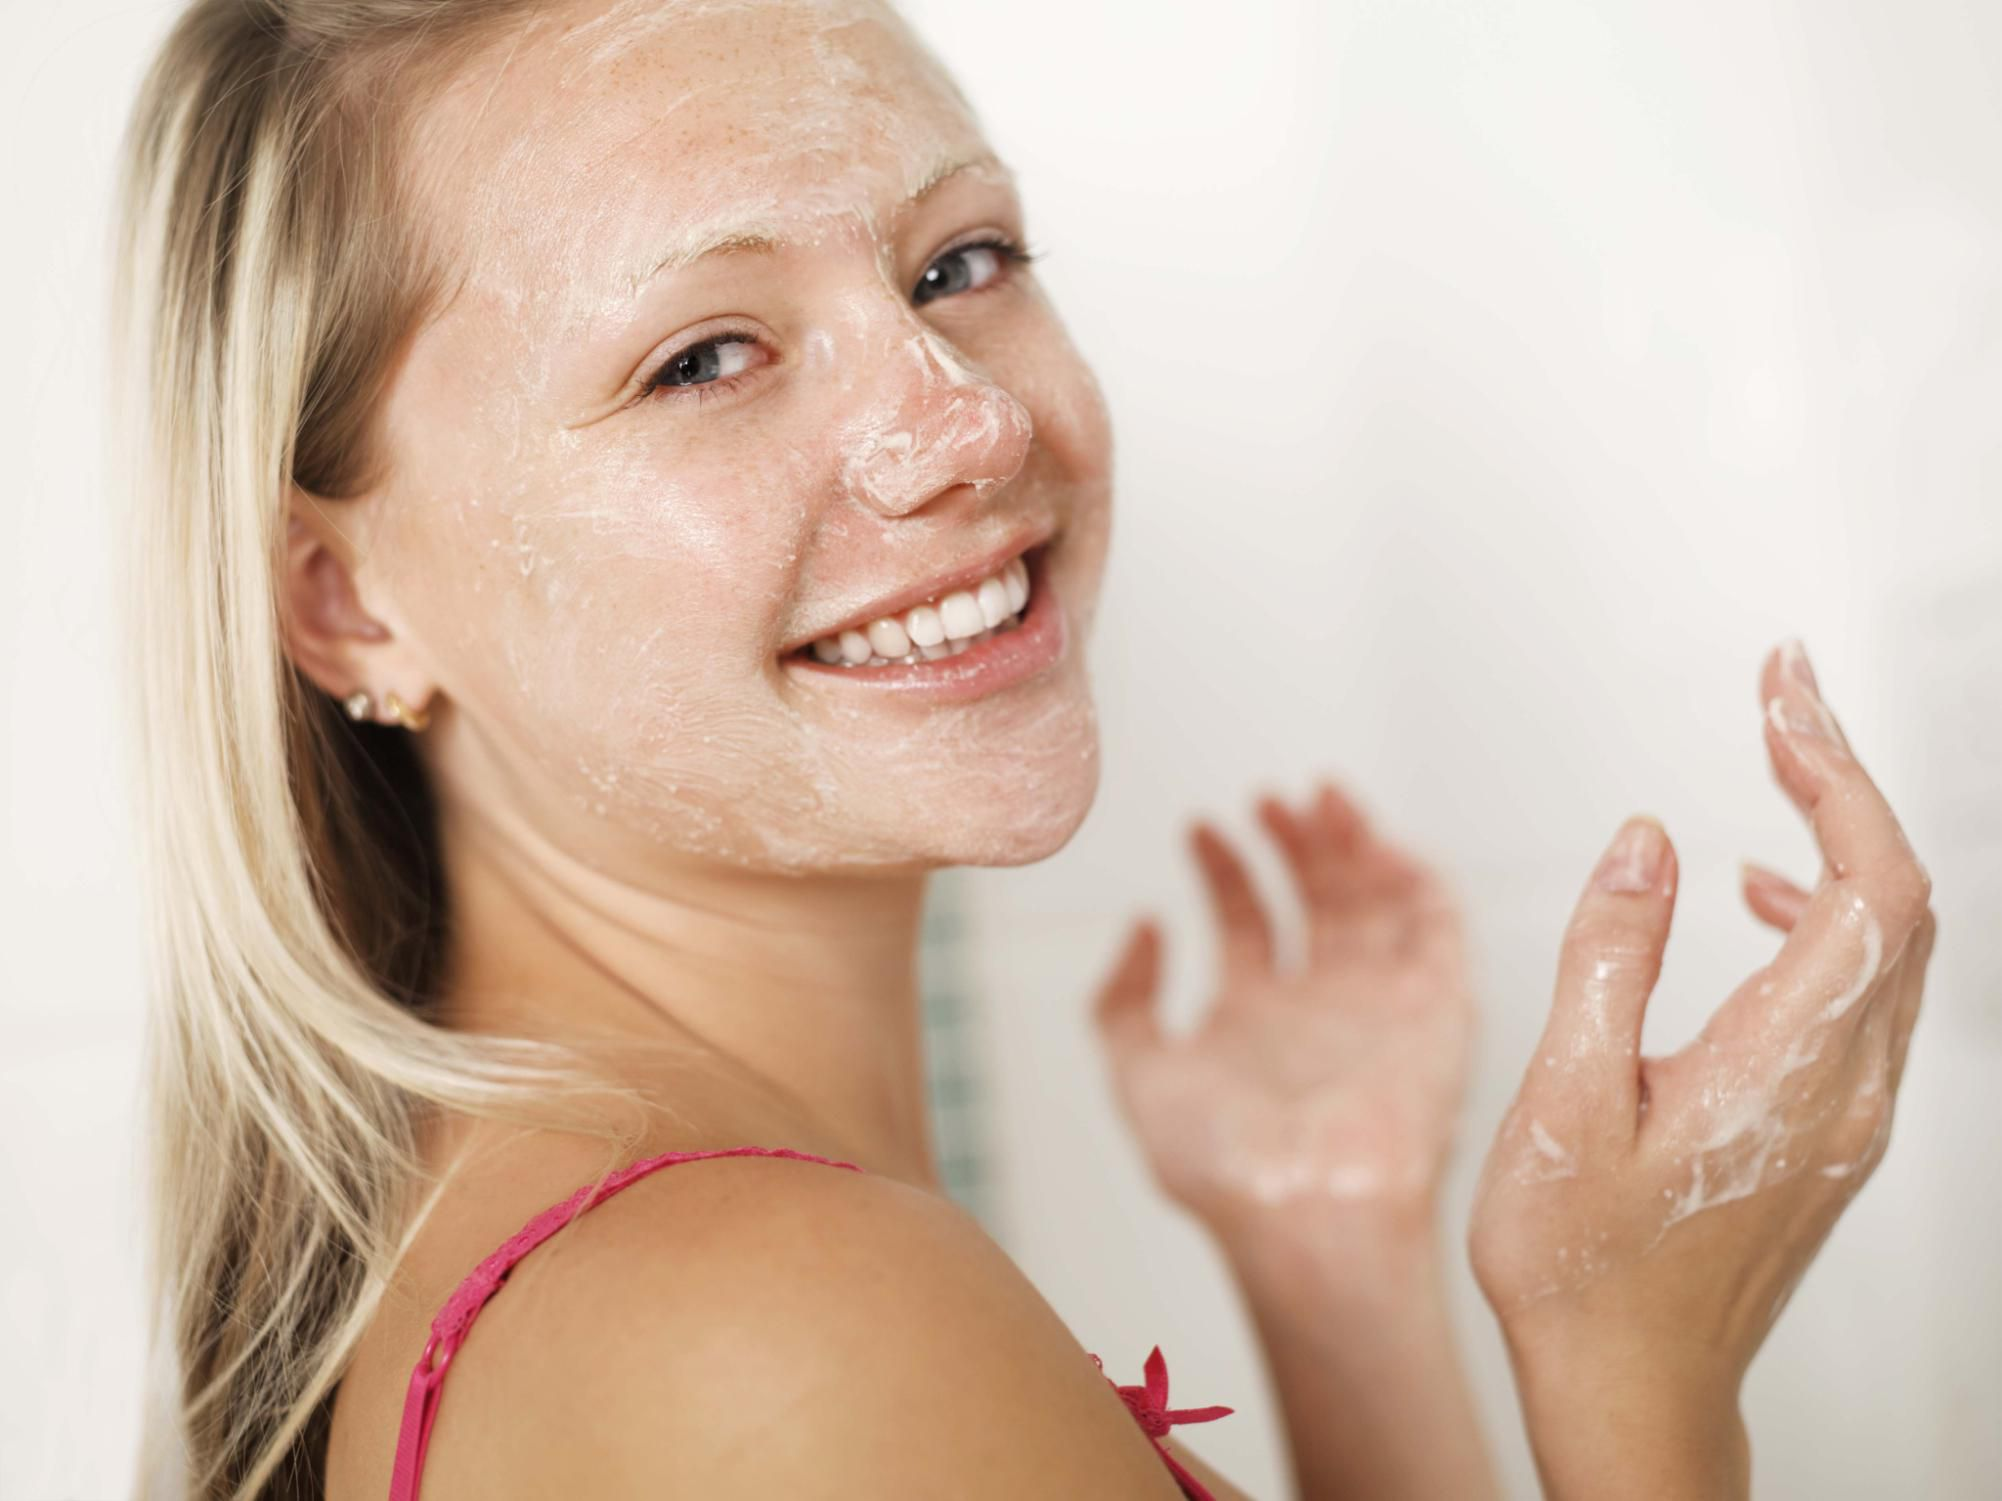 Cleansing Tips to Help Clear Your Acne-Prone Skin